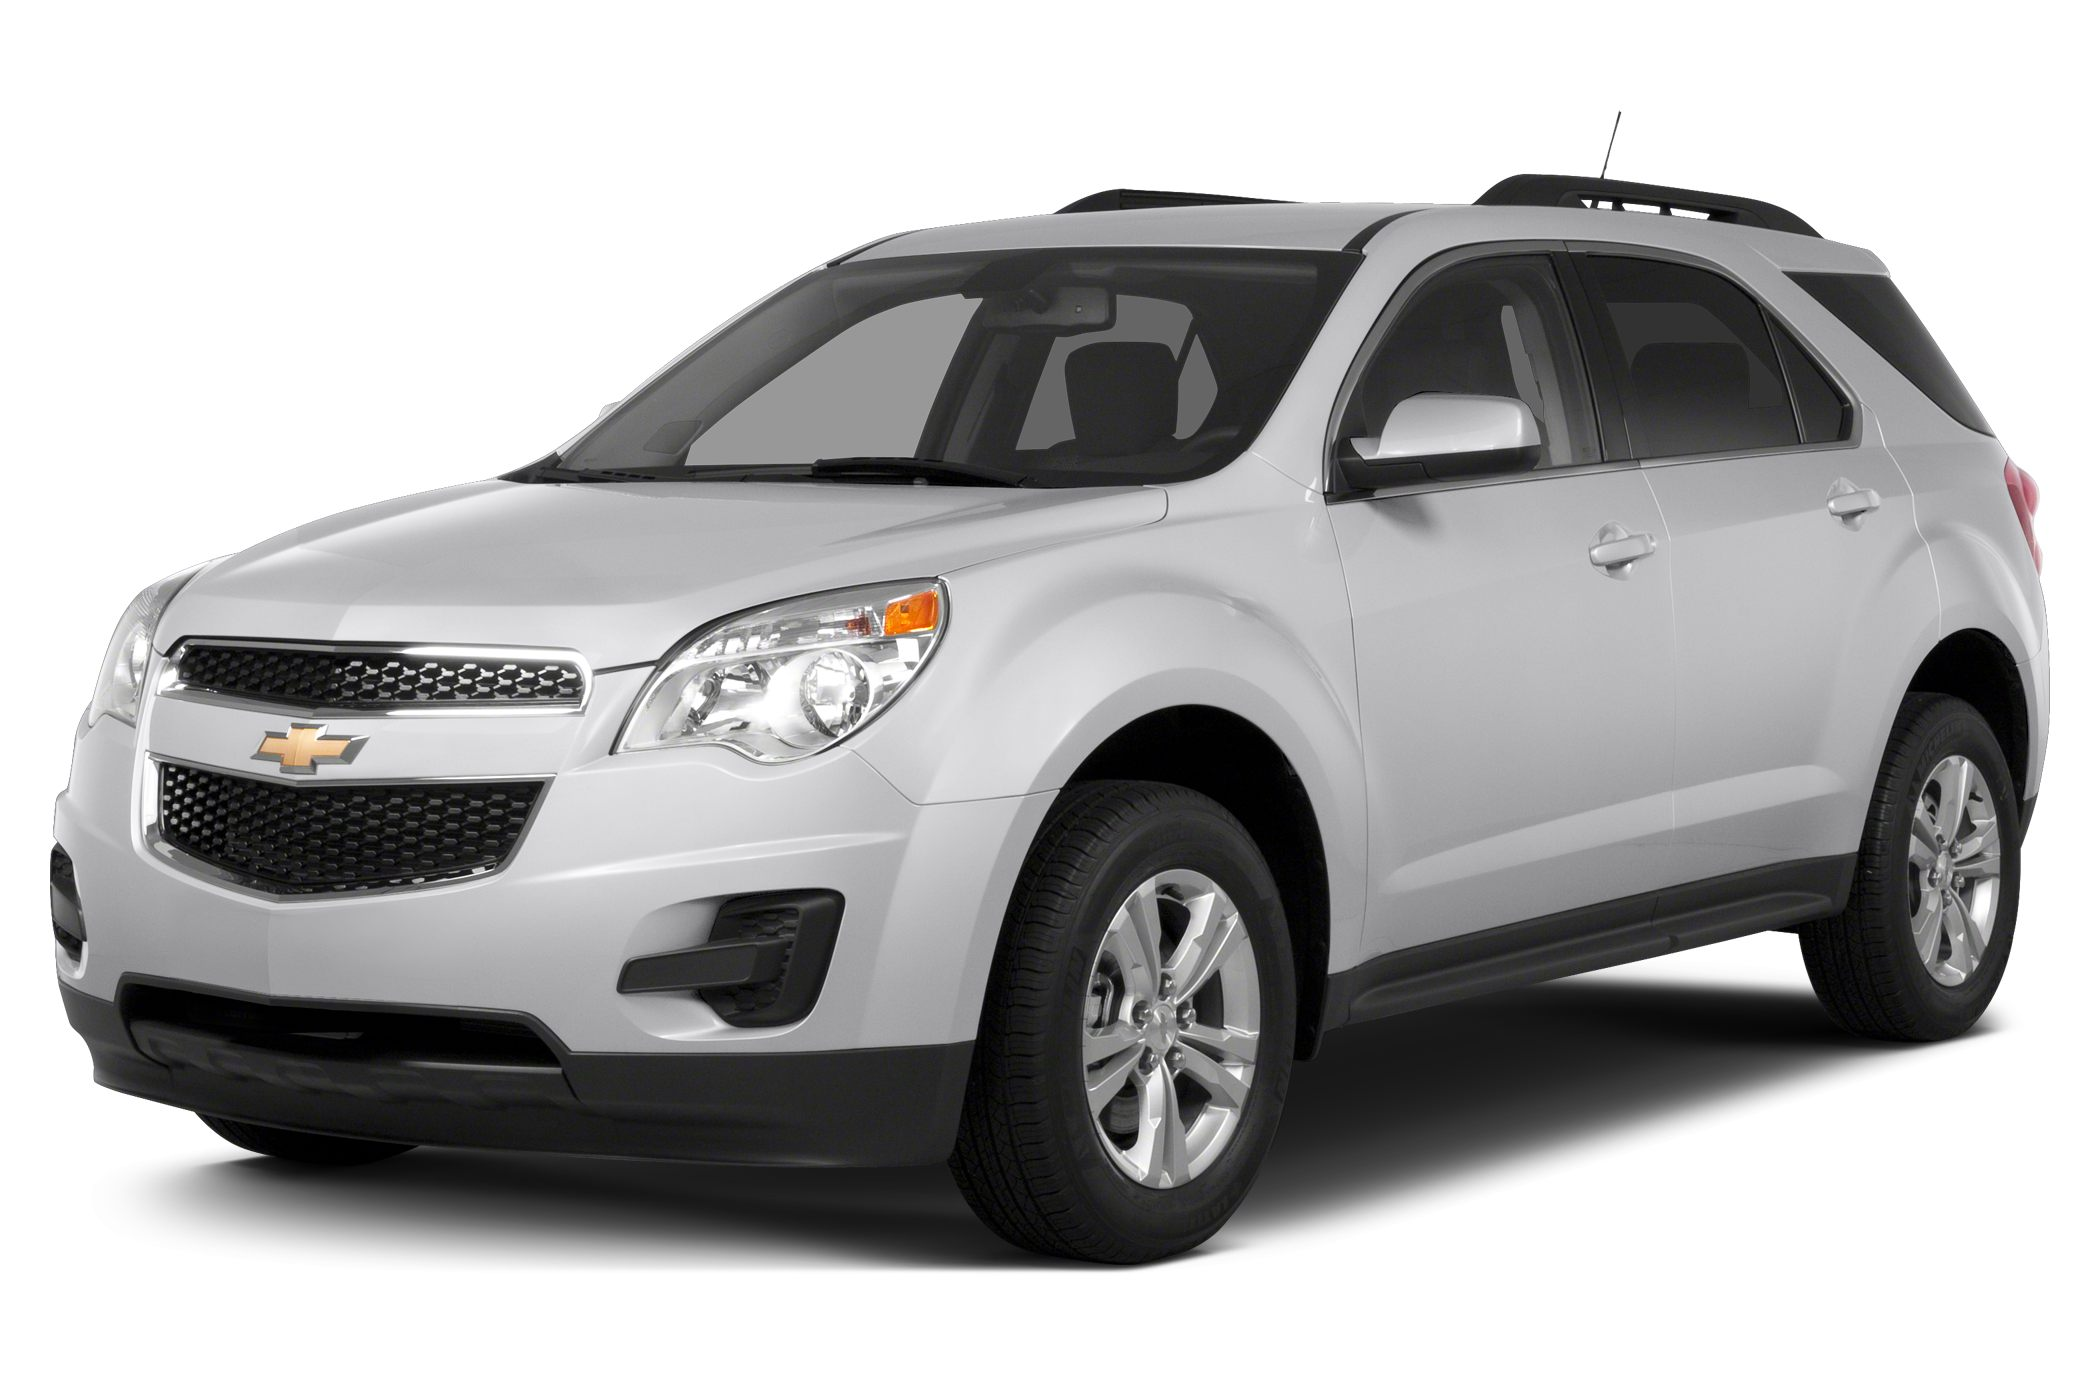 2015 Chevrolet Equinox 1LT SUV for sale in Temple for $27,670 with 1 miles.